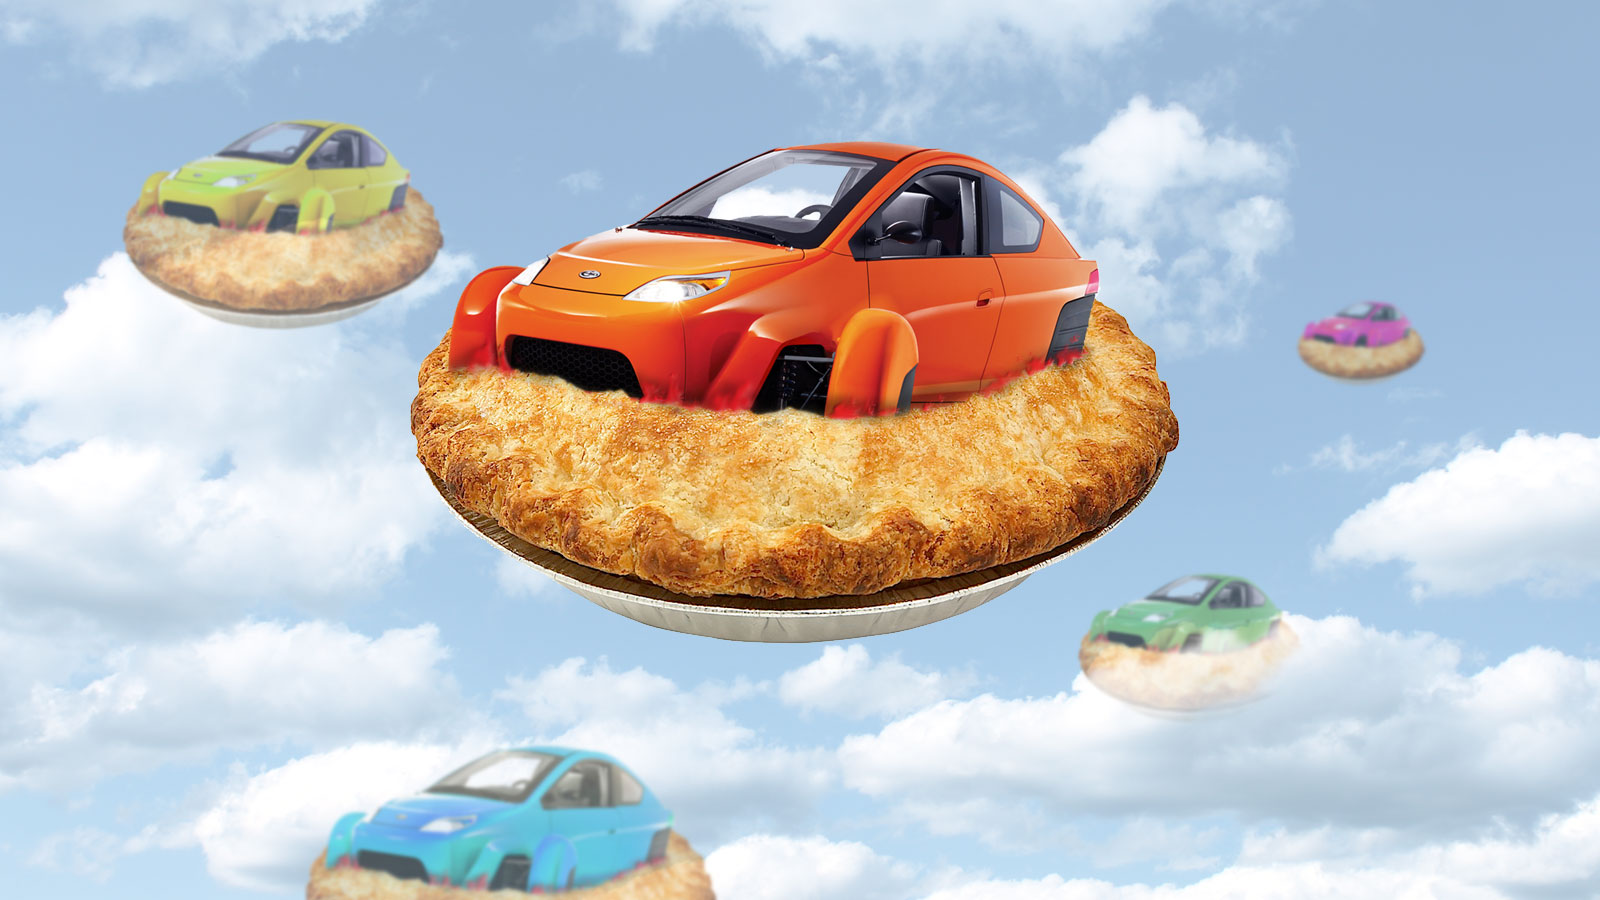 40,000 people have paid thousands for an Elio car - will it